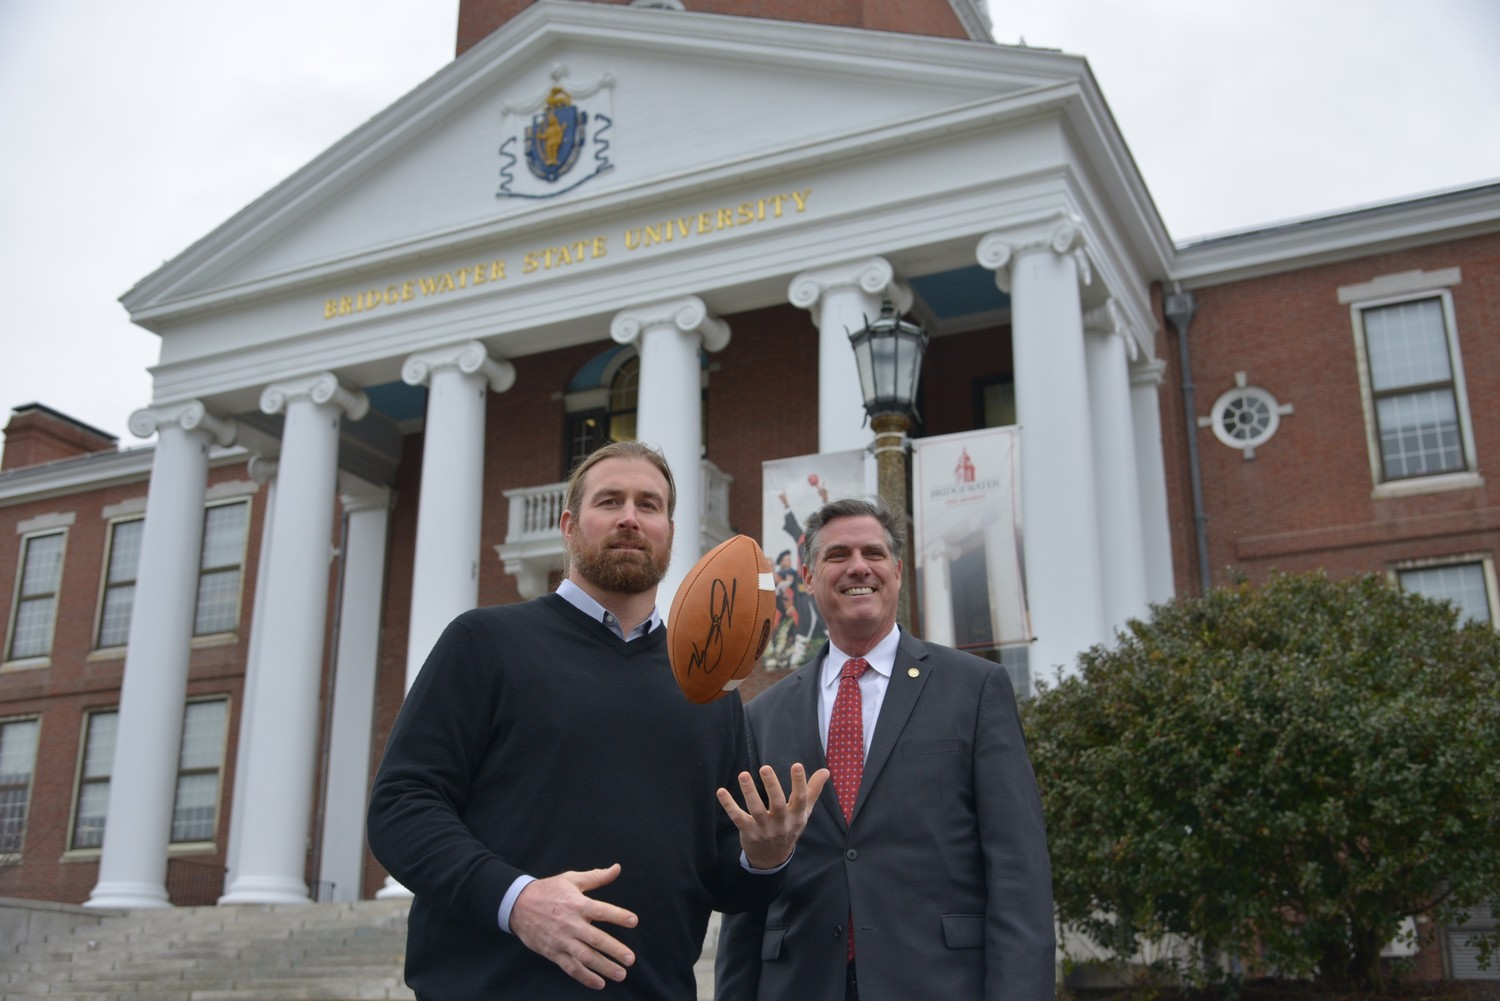 Former New England Patriot Matt Light and BSU President Frederick W. Clark Jr., Esq., discuss the Light Up BSU raffle organized through Lighthouse Raffles.